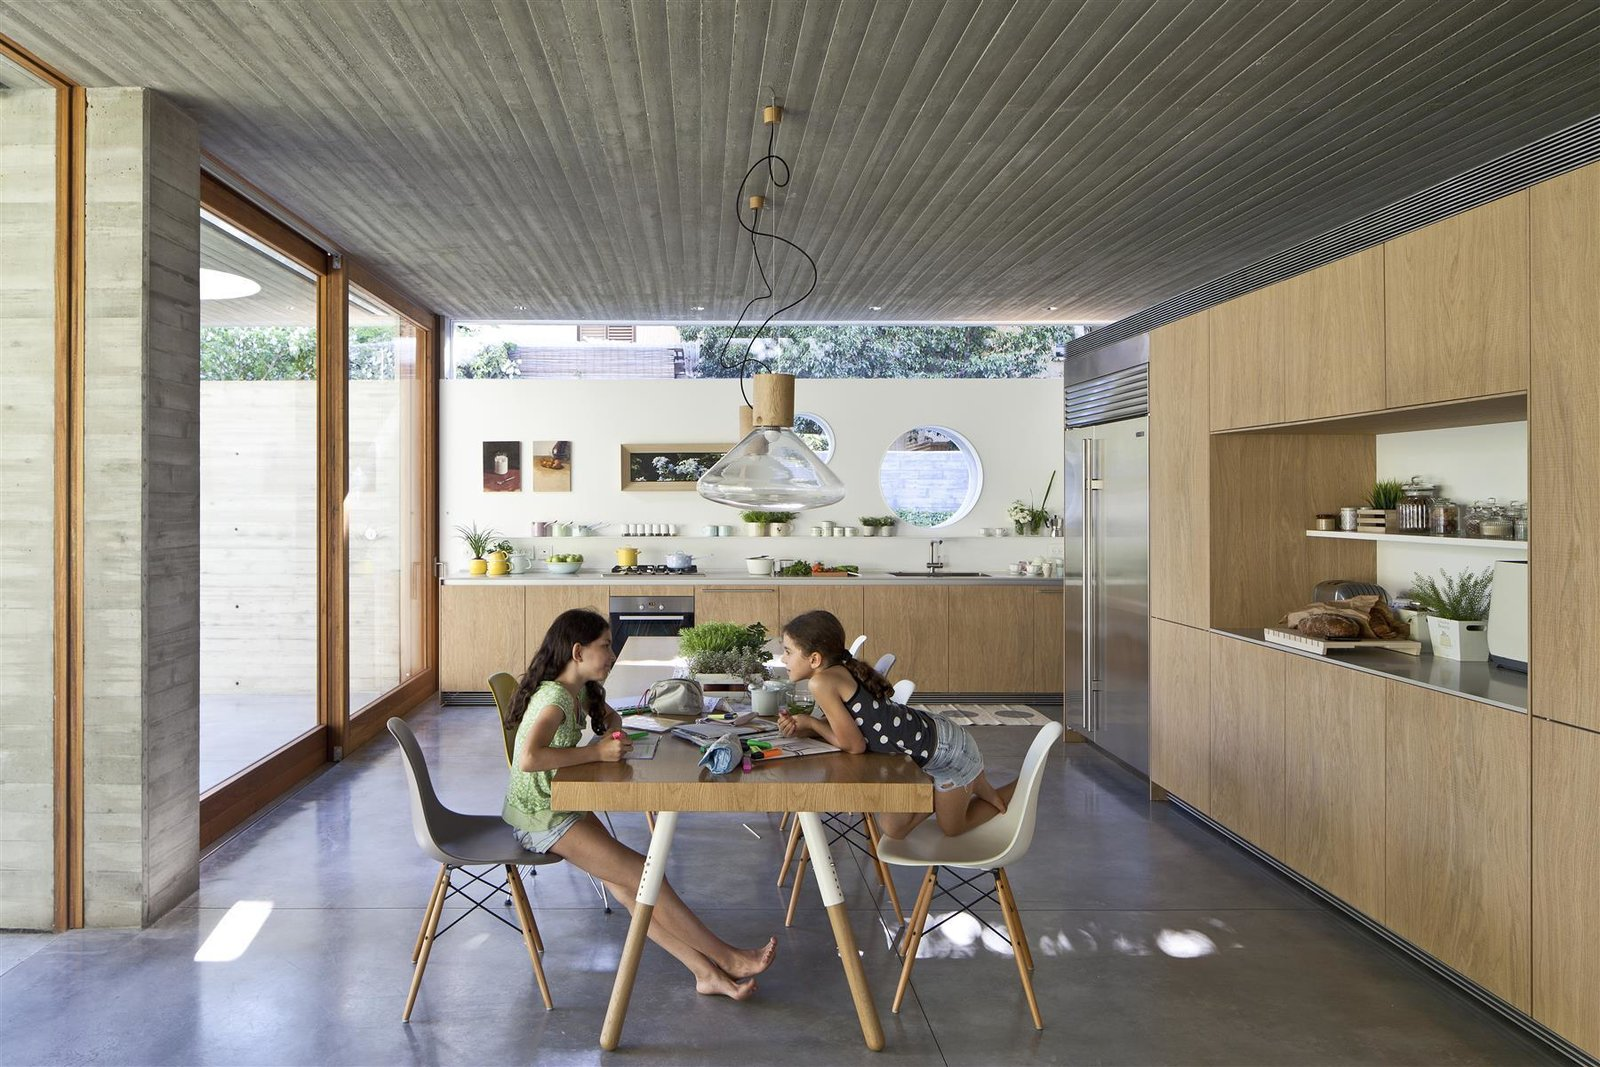 Kitchen, Wood, Concrete, Ceiling, Refrigerator, Dishwasher, Range, Cooktops, Drop In, and Open  Best Kitchen Concrete Refrigerator Wood Ceiling Drop In Cooktops Photos from An Architect's Bright and Airy Family Home Thrives Within a Brutalist Concrete Structure